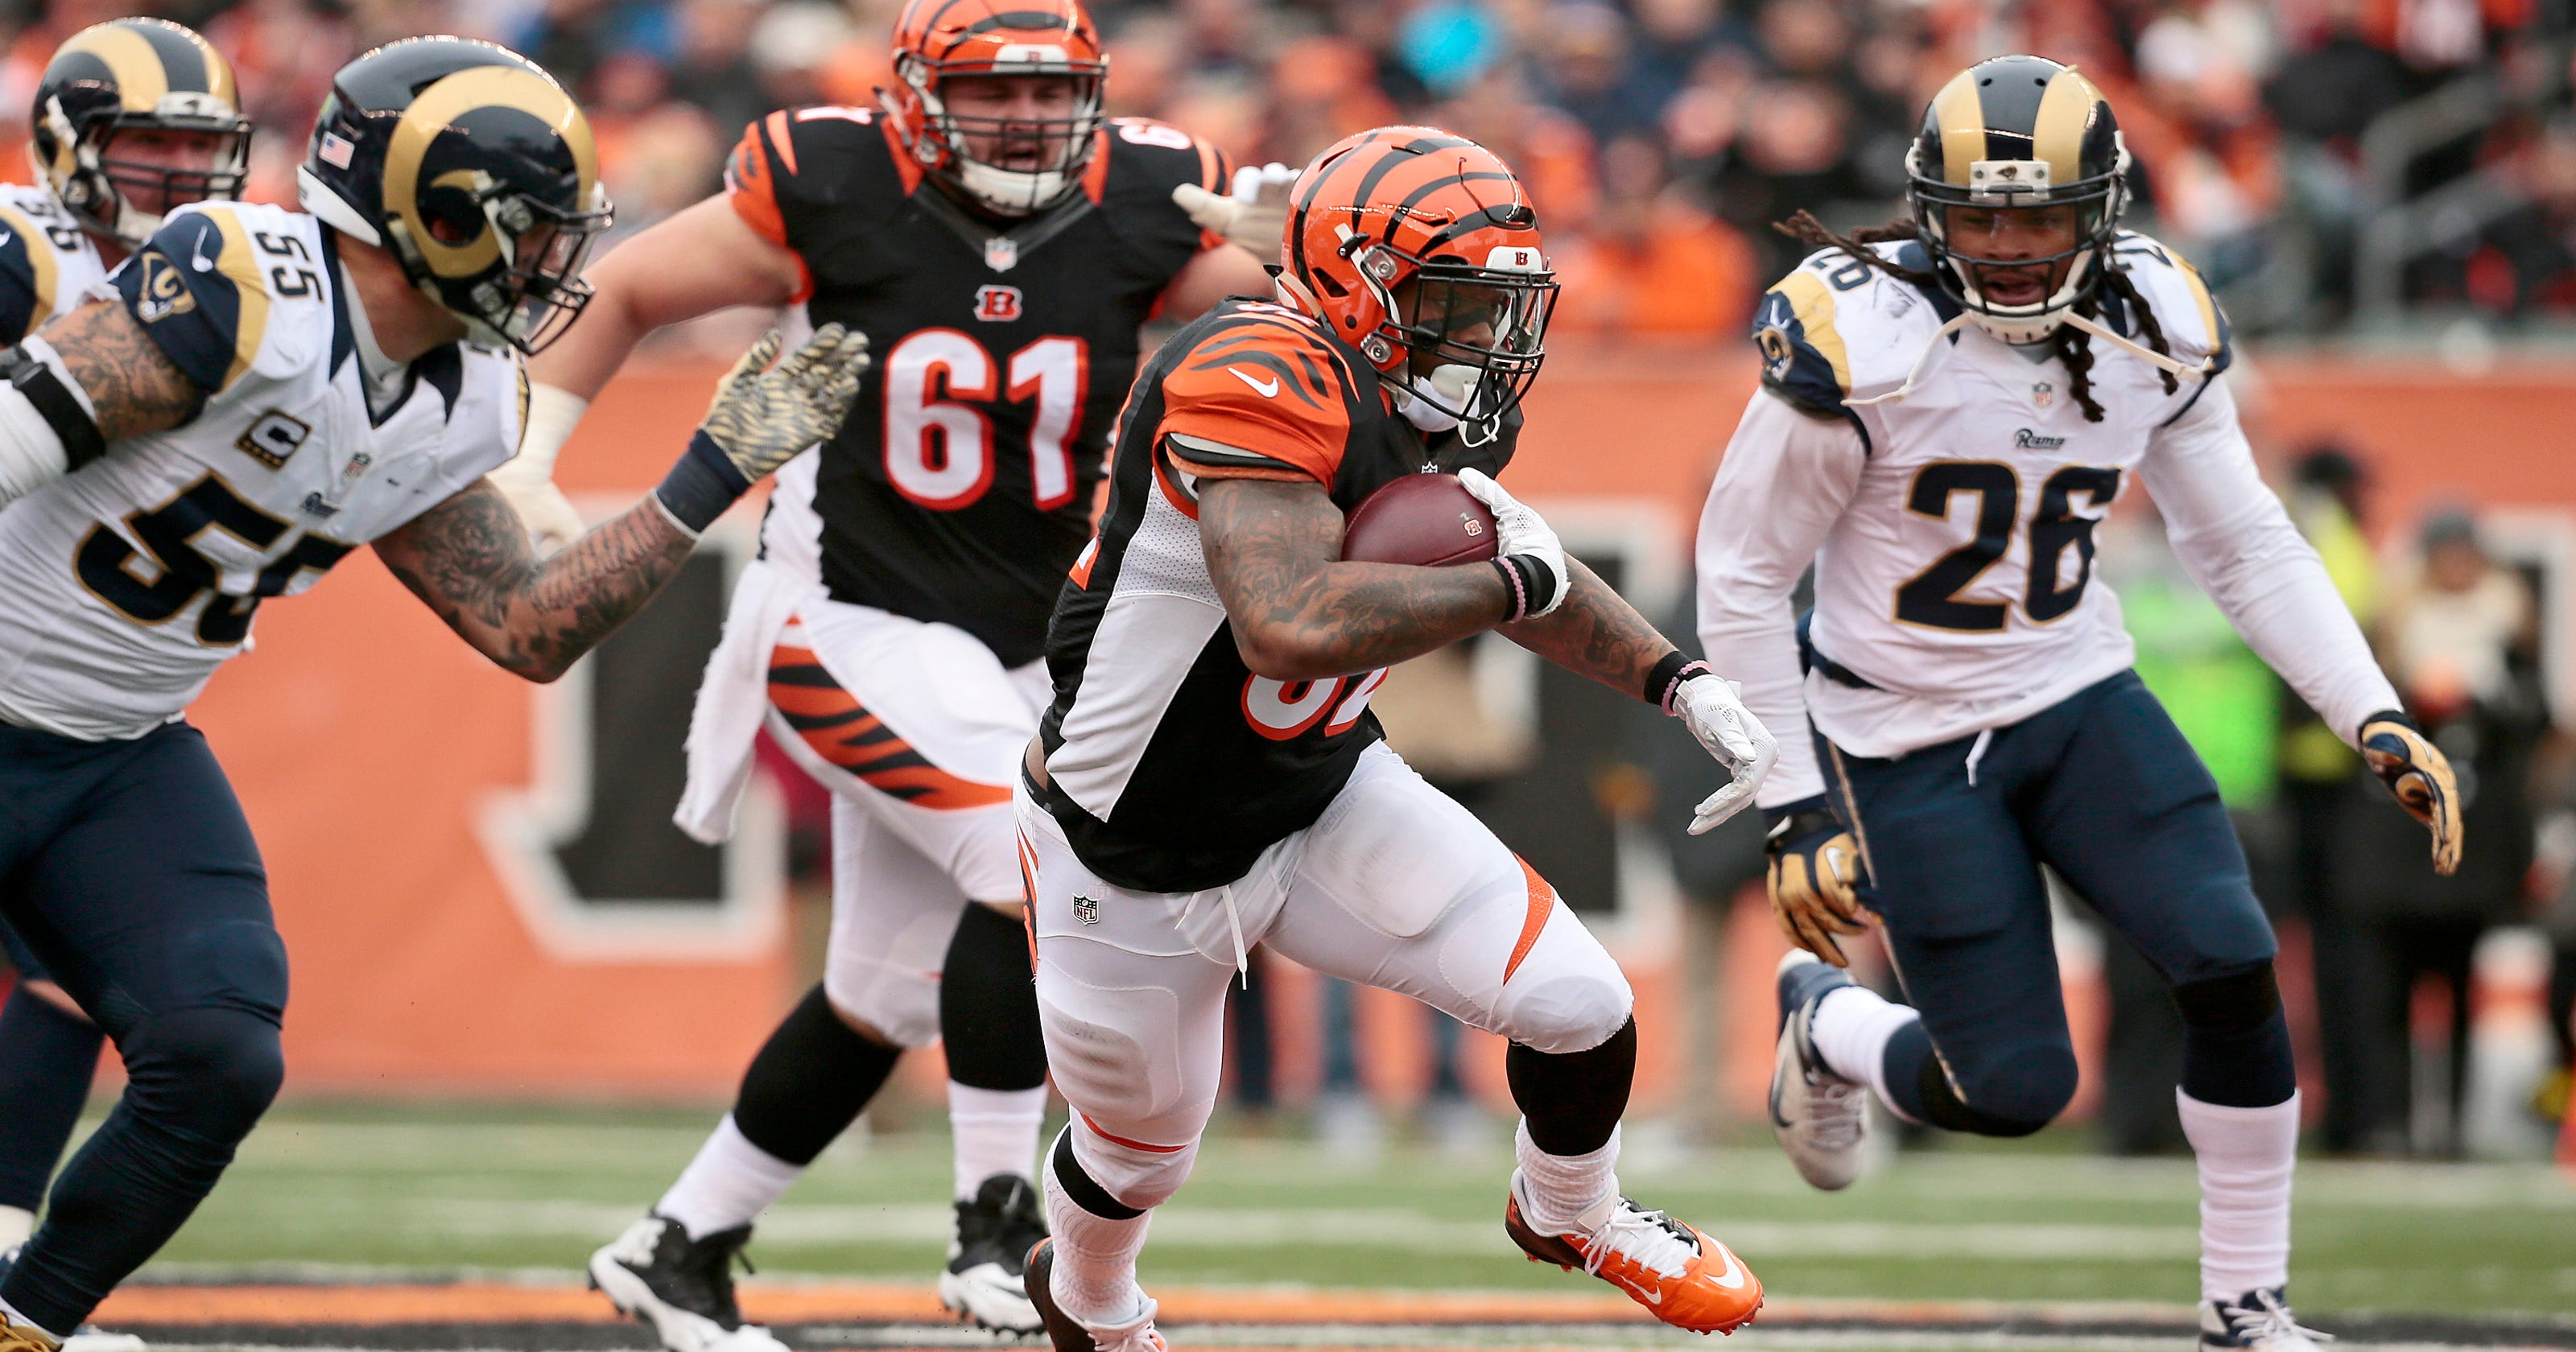 6a98e67ab16 Bengals Walkthru  Turnt time for Jeremy Hill